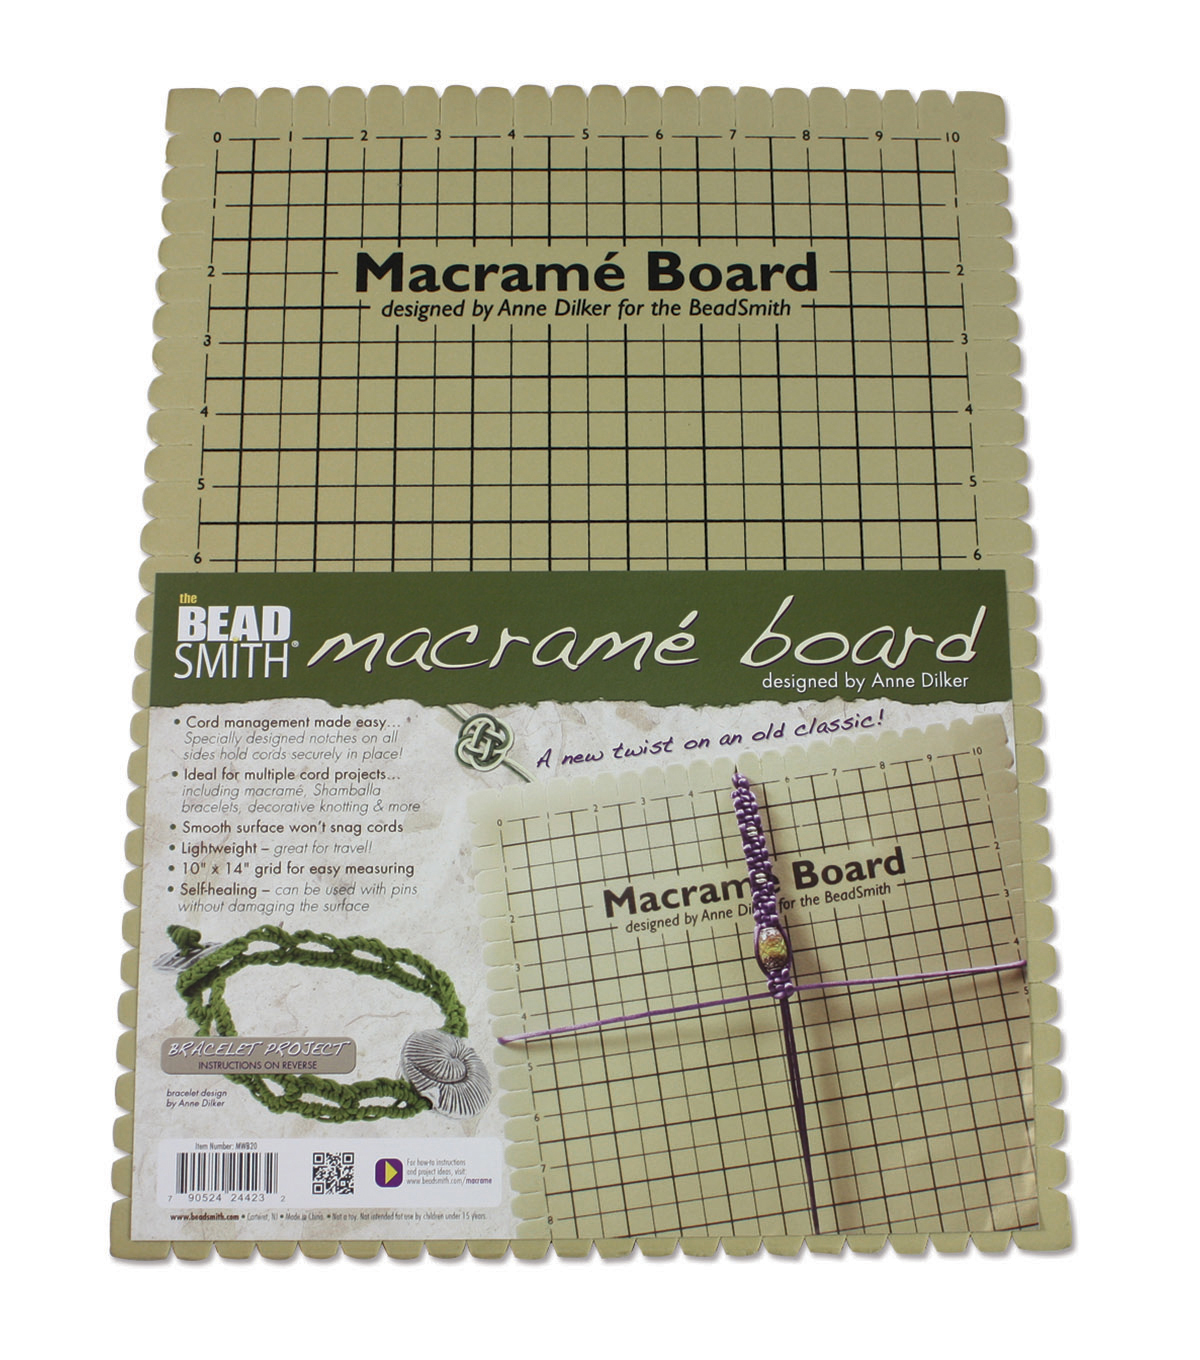 The Beadsmith Anne Dilker Macrame Board